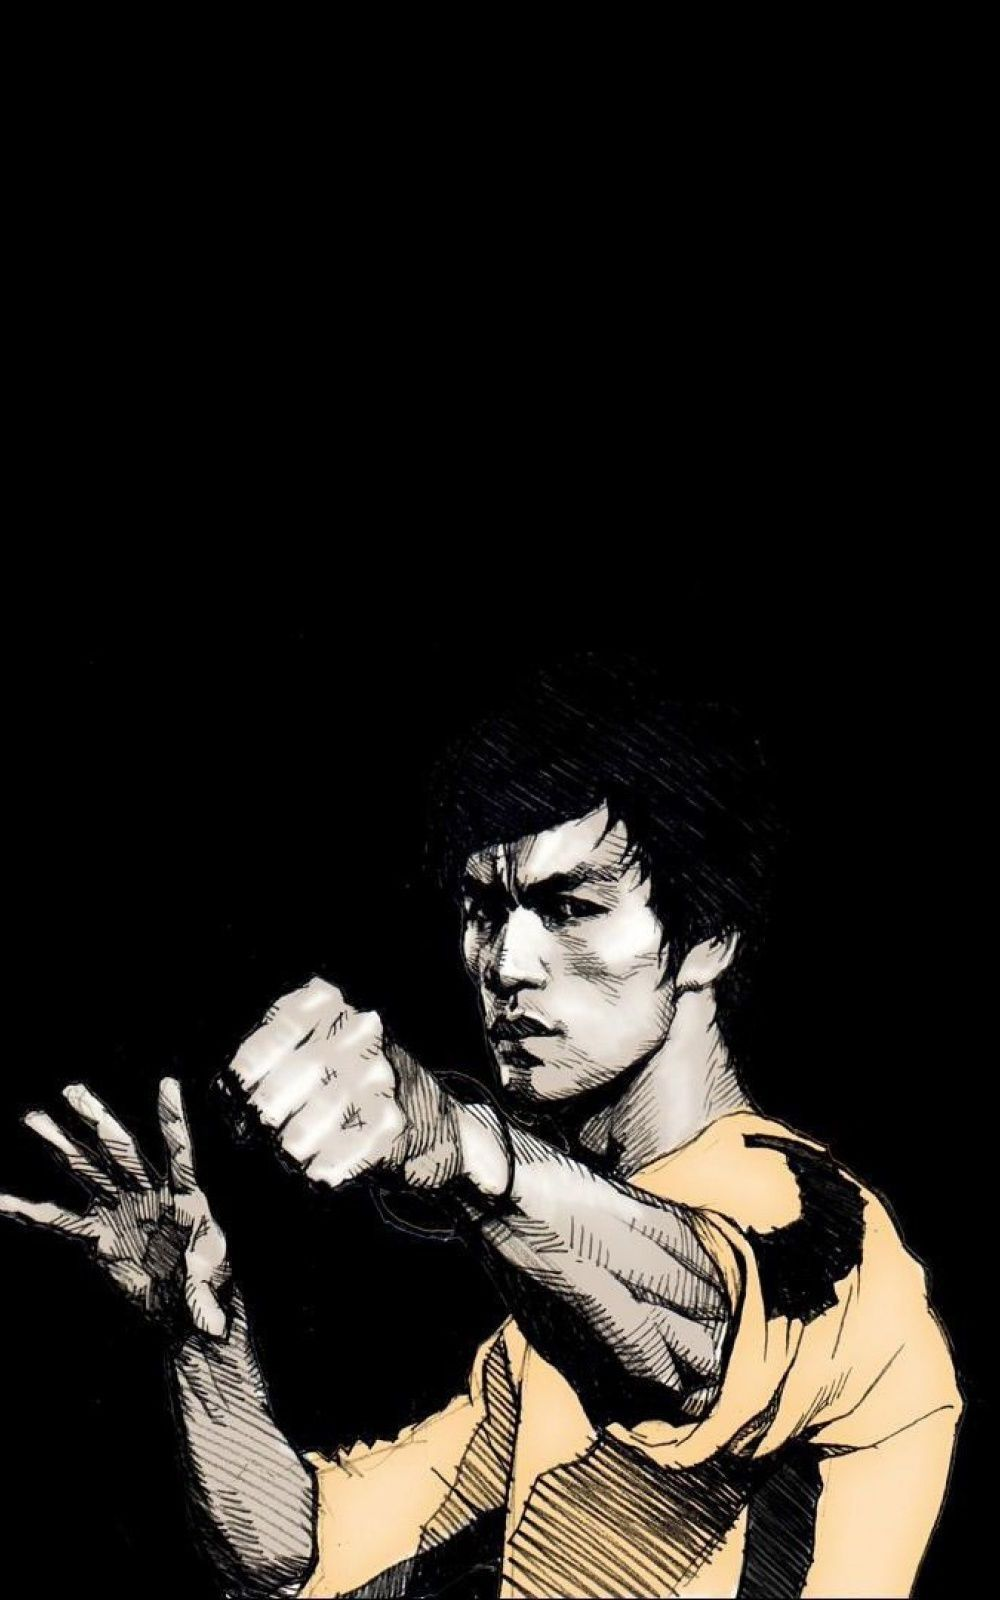 Bruce Lee Wallpaper For Mobile Phone Tablet Desktop Computer And Other Devices Hd And 4k Wallpapers In 2021 Bruce Lee Martial Artists Art Reference Poses